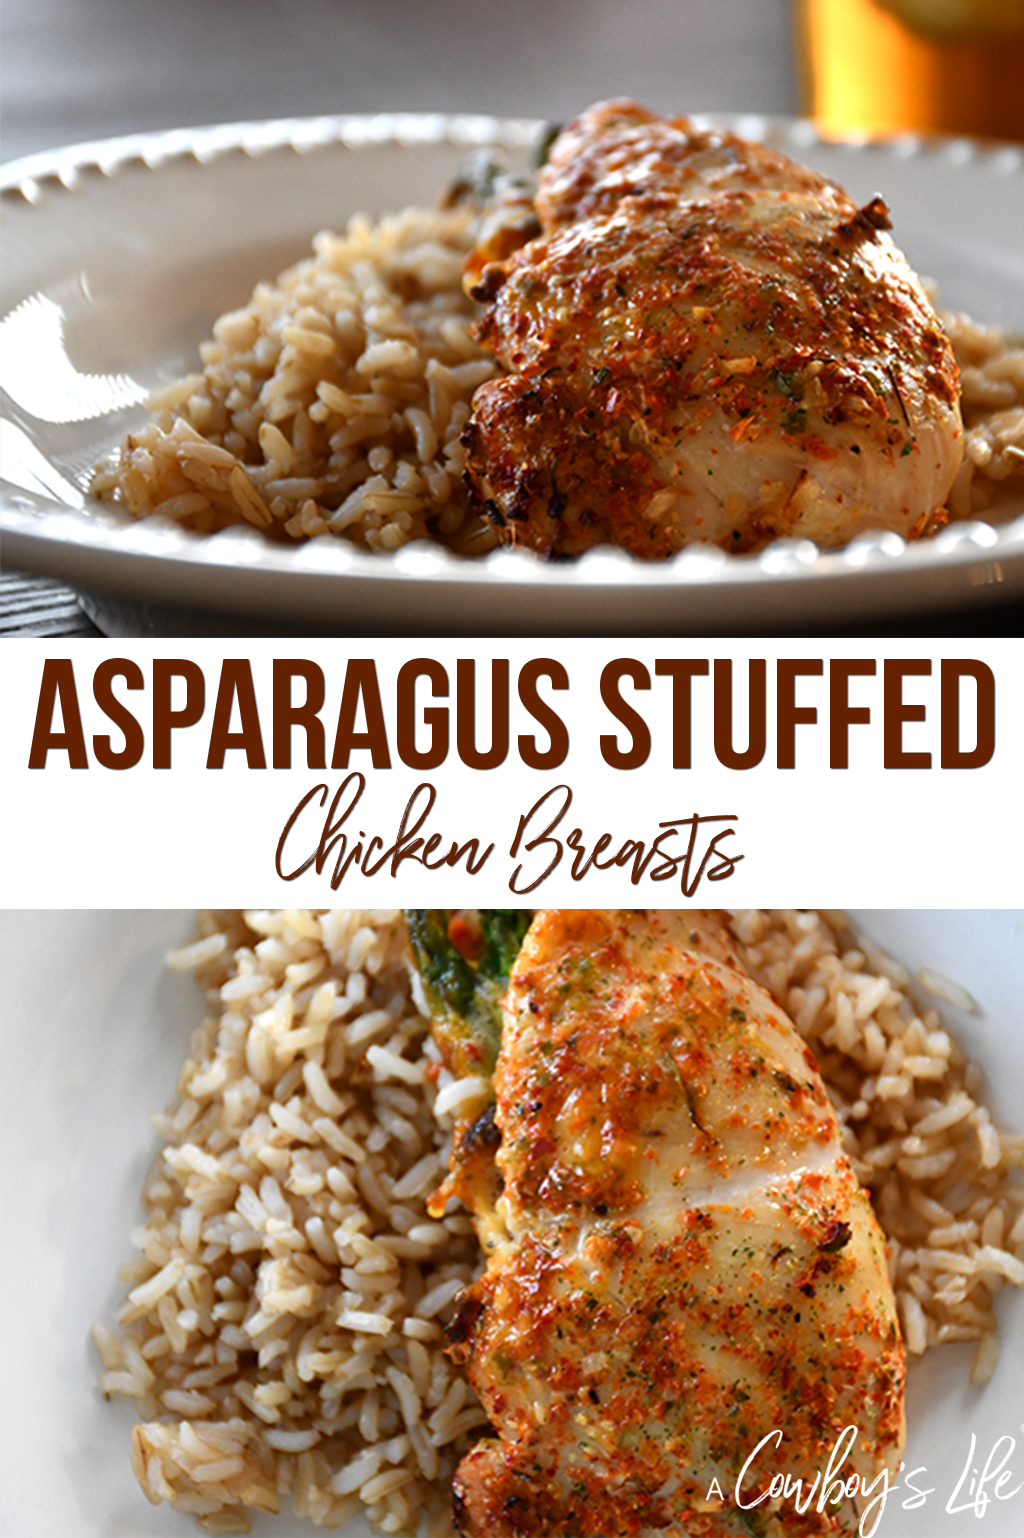 How to make asparagus stuffed chicken breasts